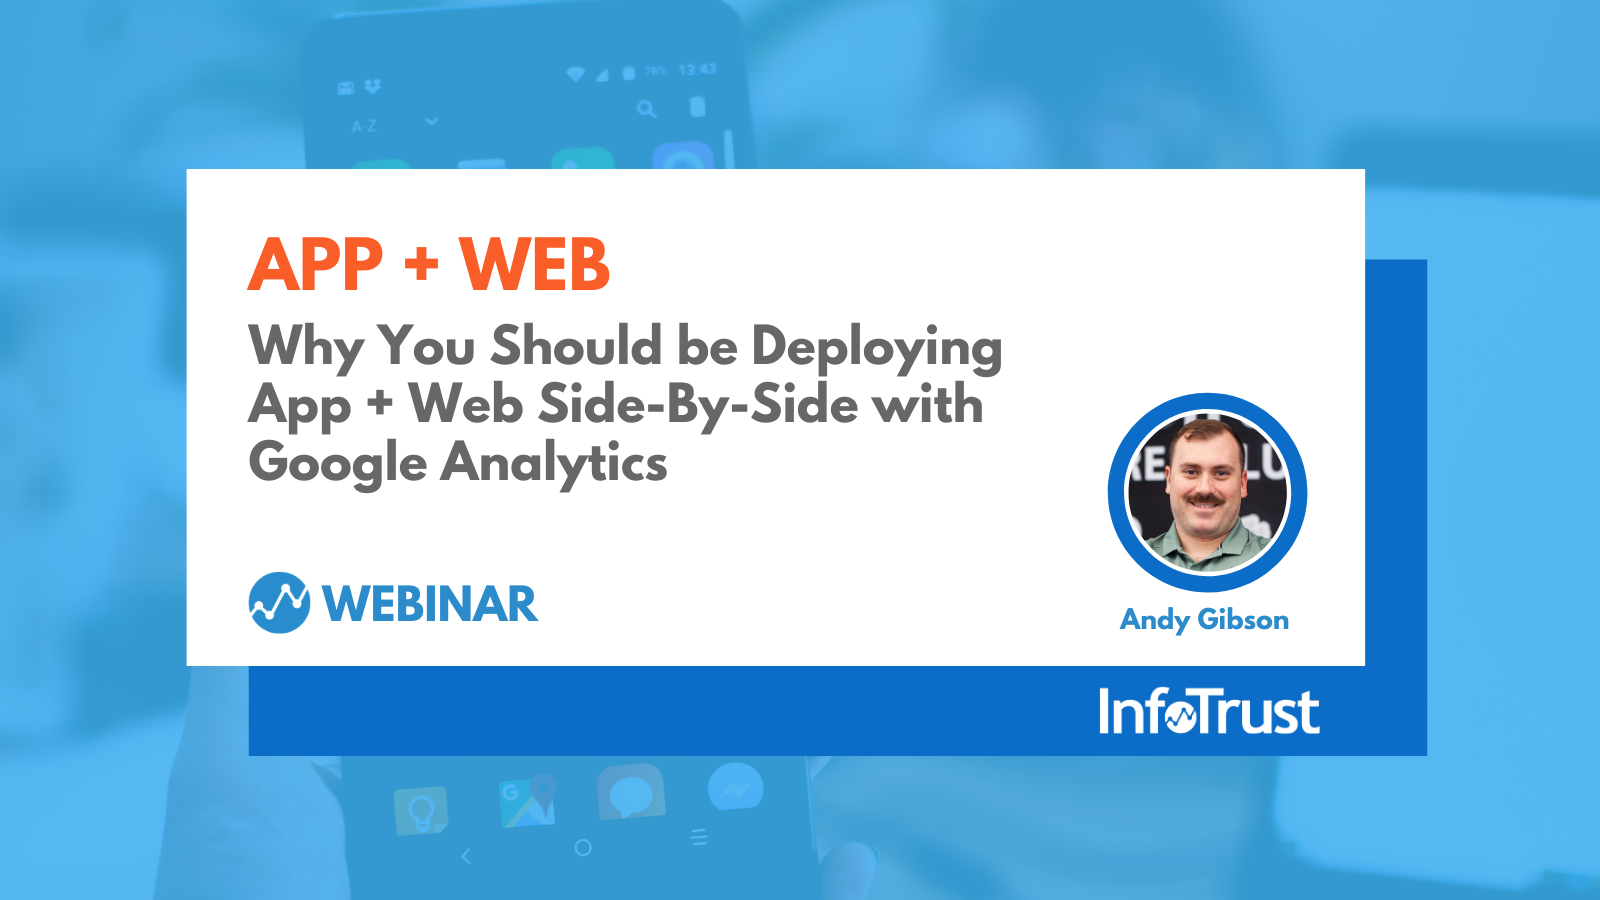 Why You Should Deploy App + Web Side-by-Side with Google Analytics